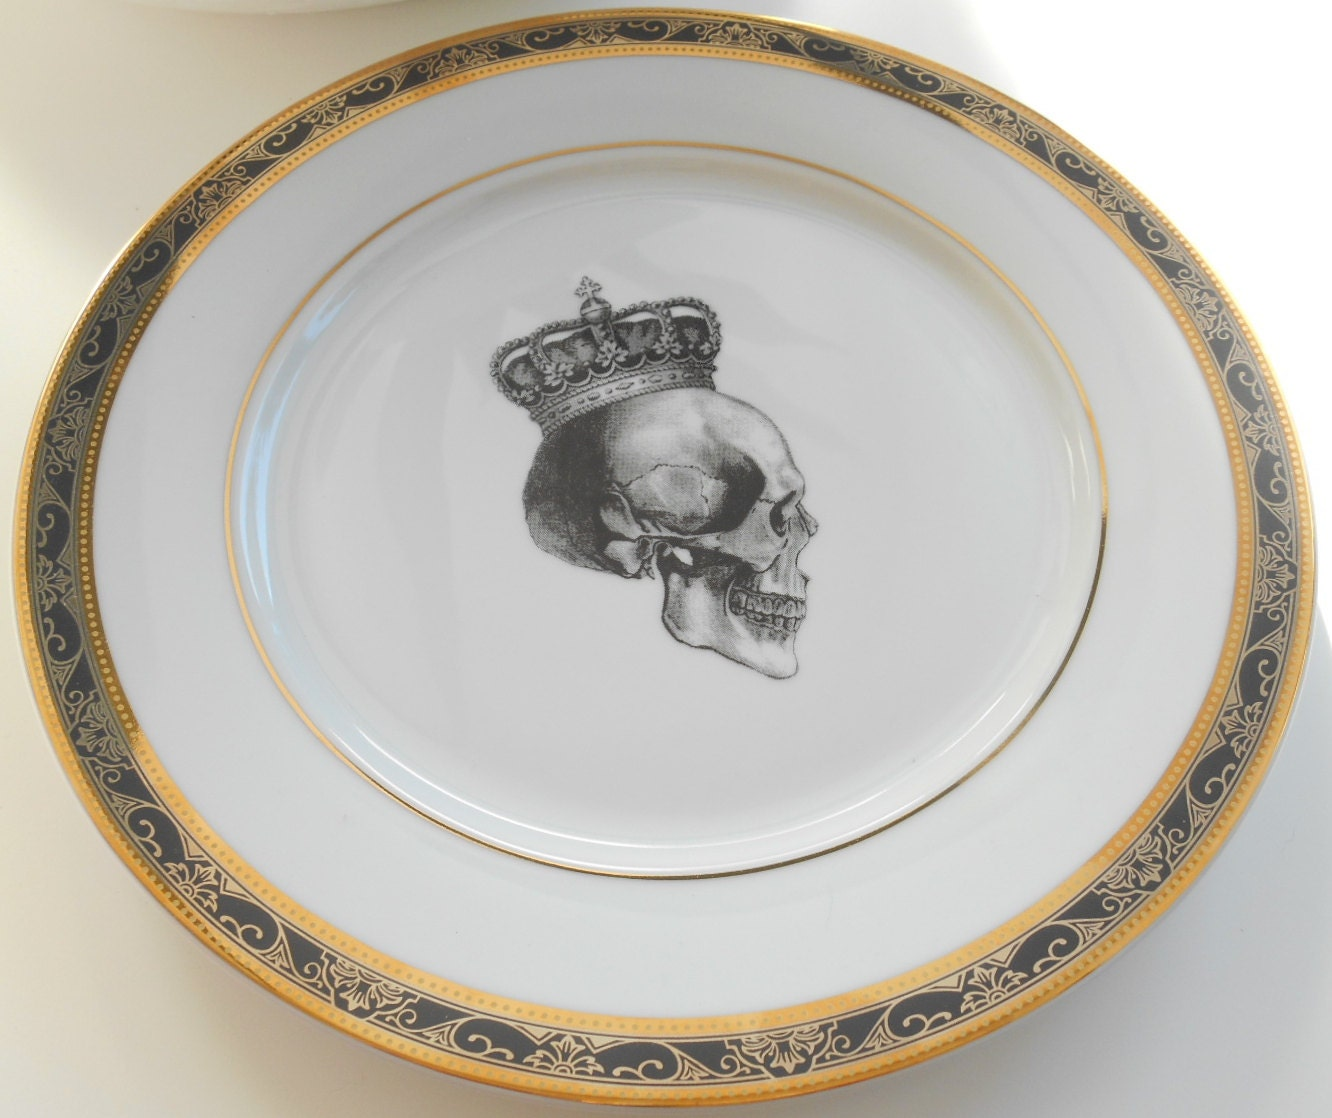 Black and Gold Dinner Plate $35. Fancy Gold Salad Plate $35 (reg.$40) Su0026H $25 & Custom Order for Mary - Four Black and Gold Dinner Skull and